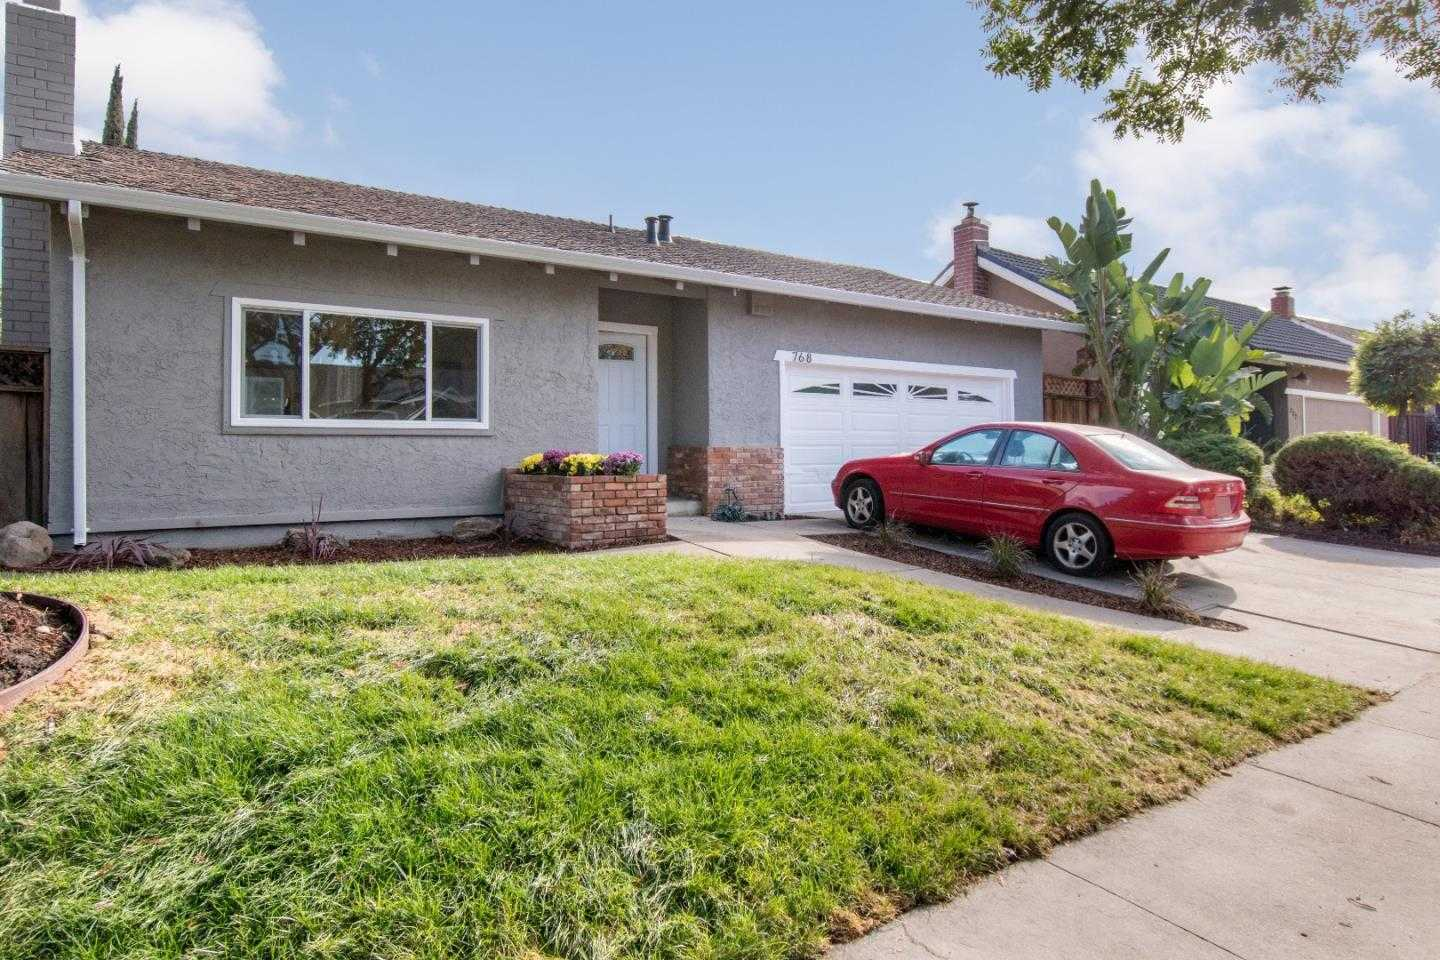 $1,098,000 - 4Br/2Ba -  for Sale in San Jose